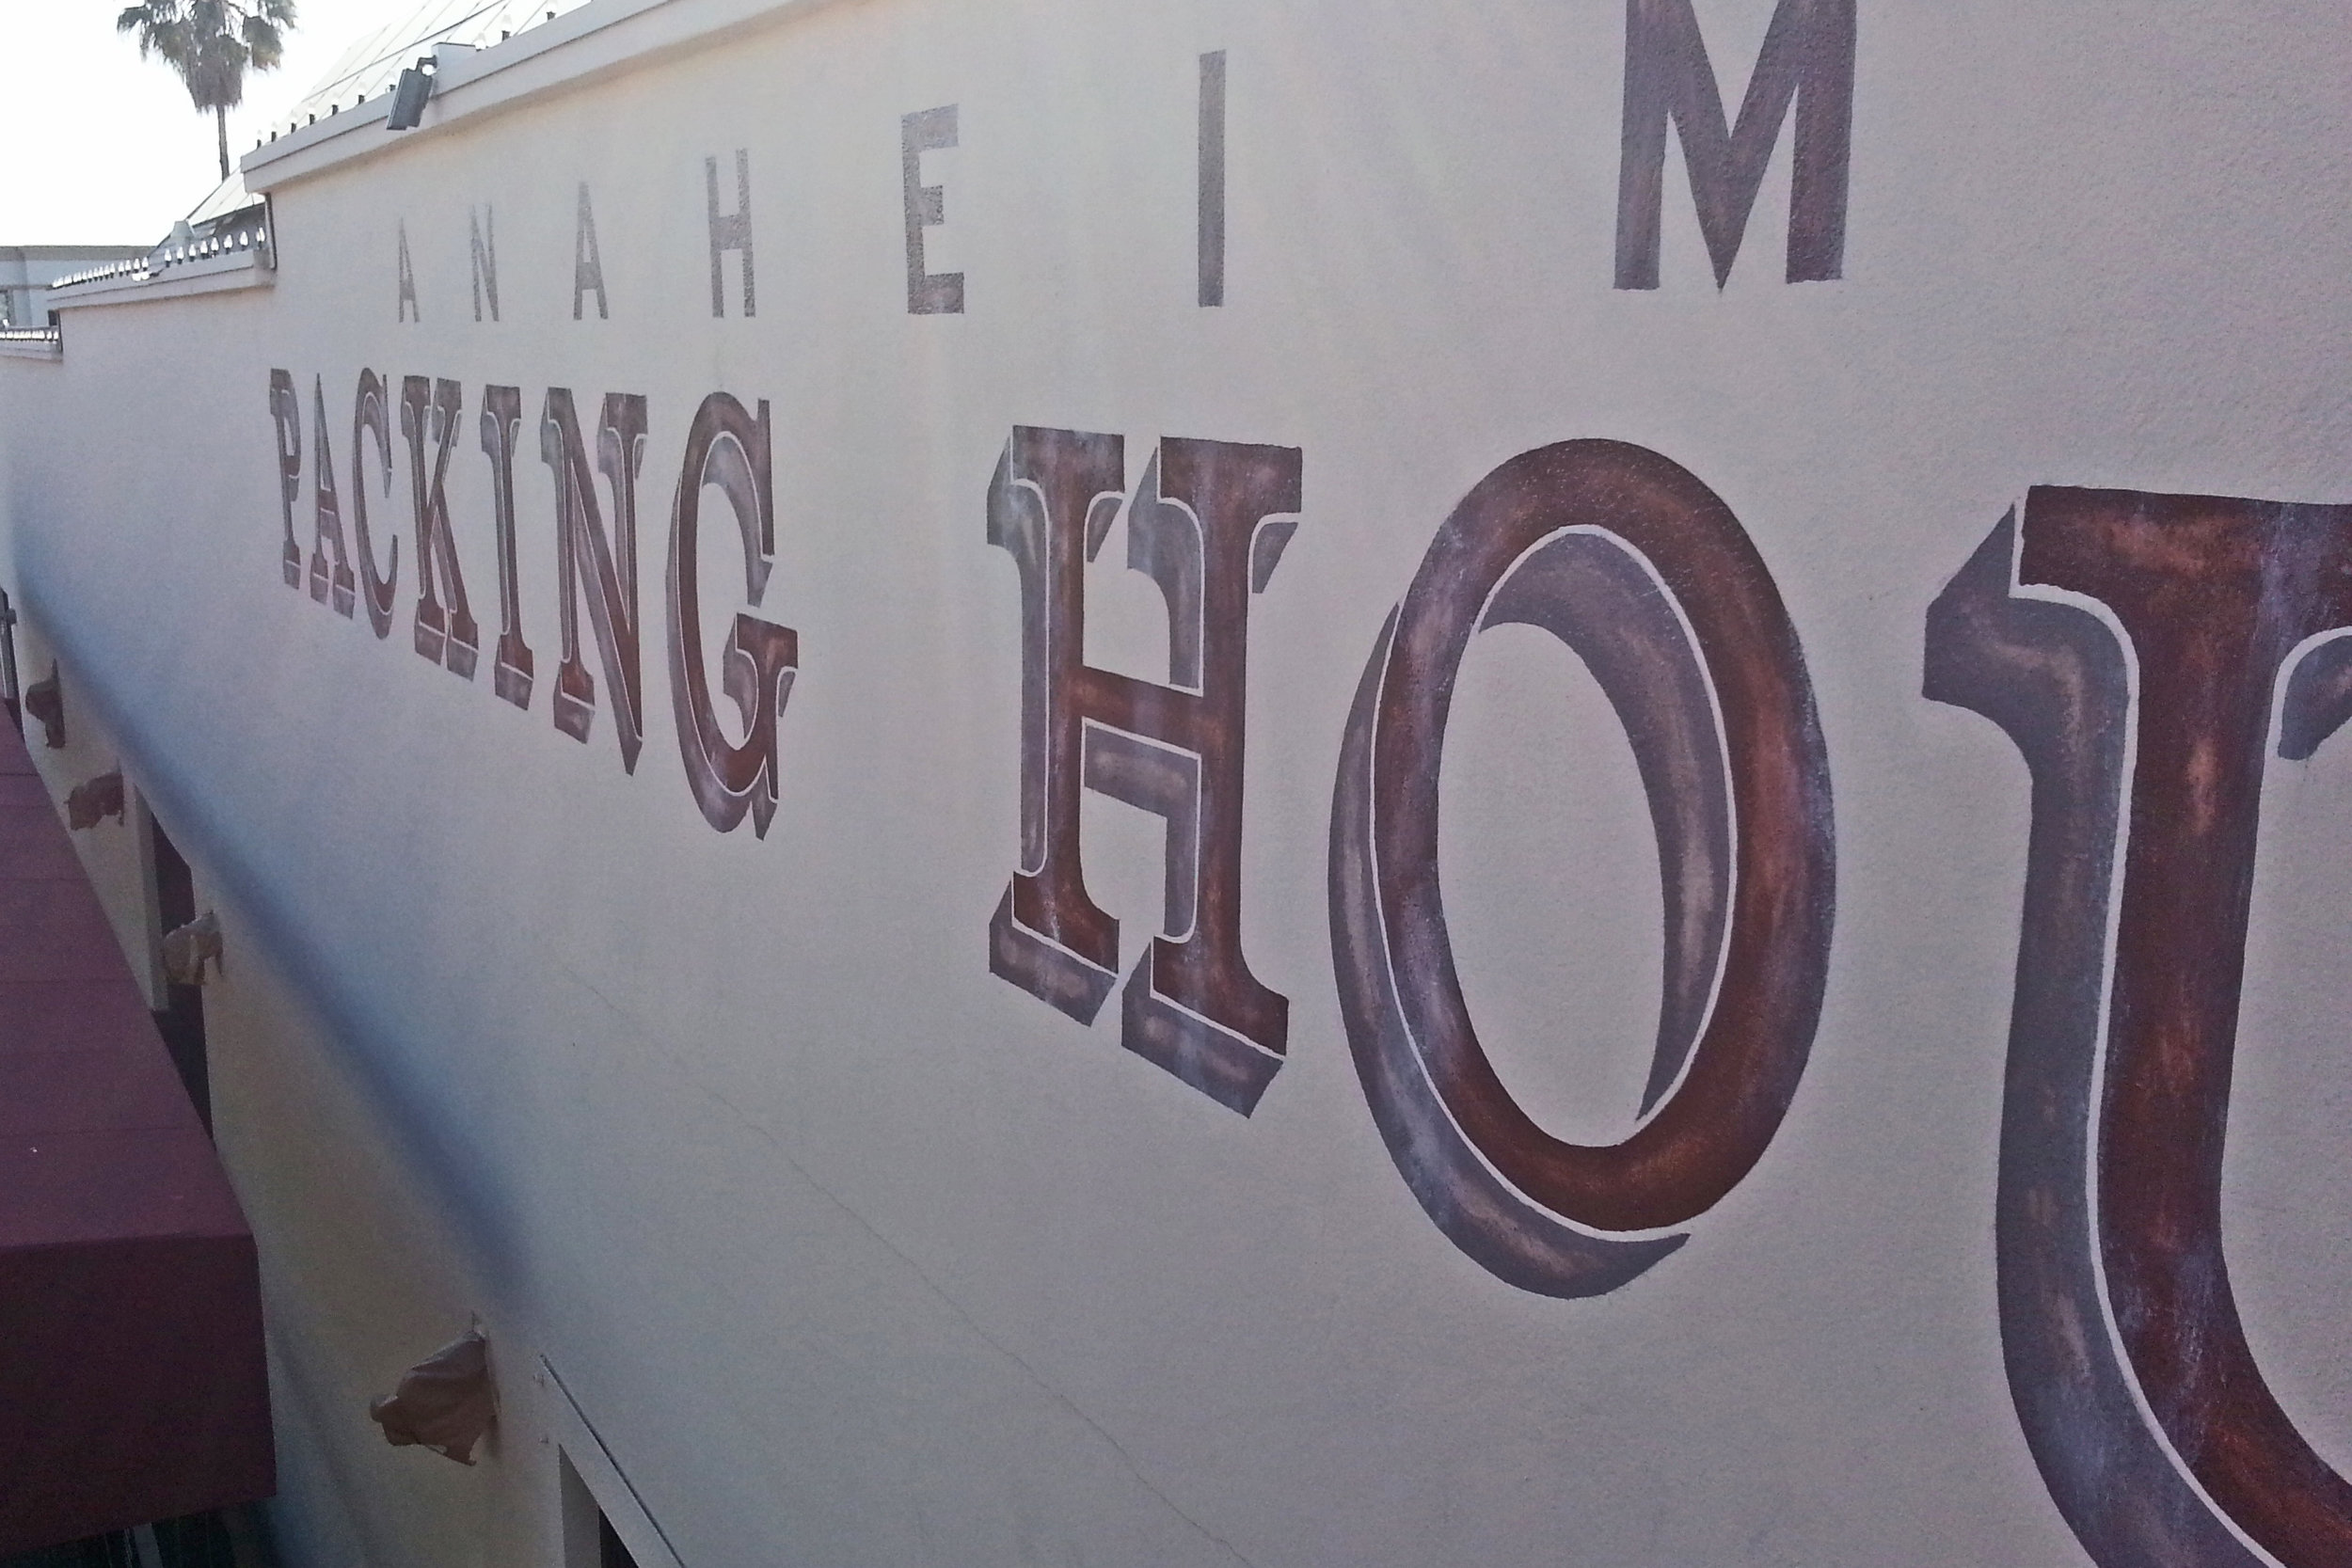 Anaheim Packing House - hand painted graphic mural distressed lettering detail